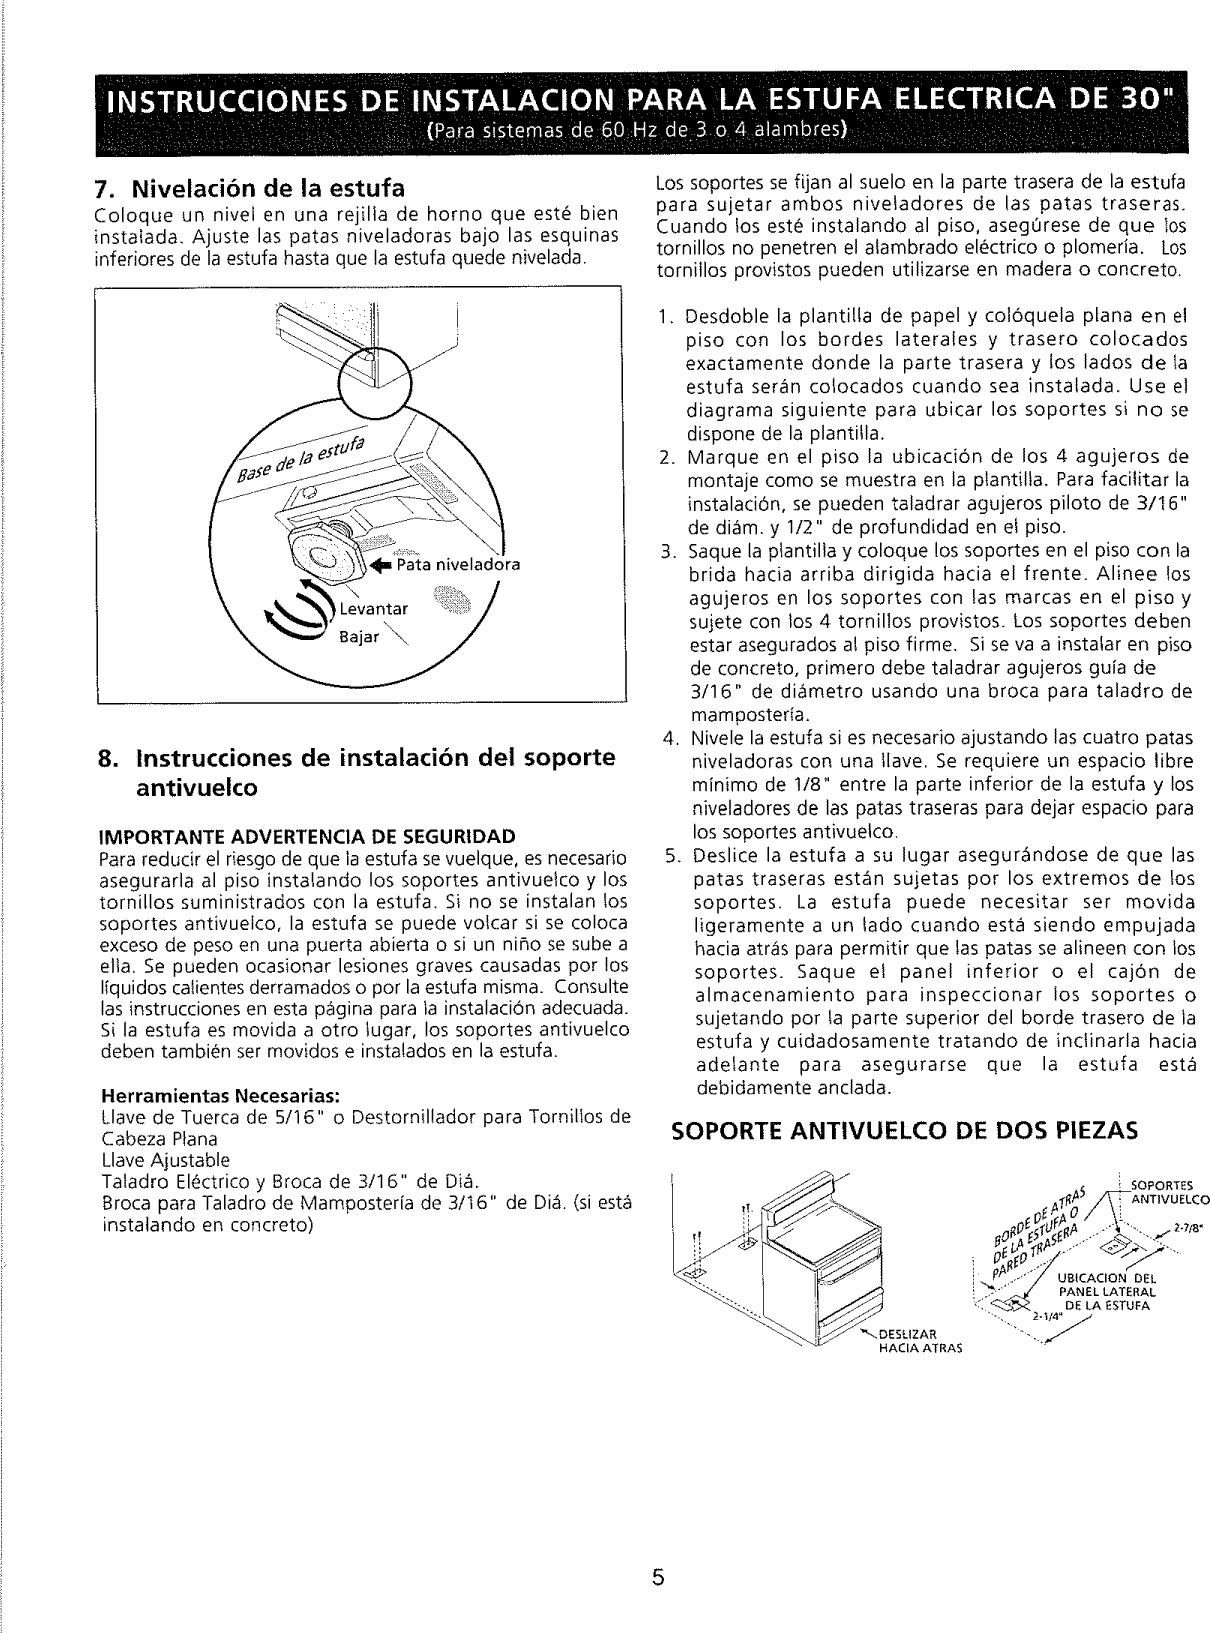 Page 5 of 6 - Frigidaire FEF363SGWA User Manual  ELECTRIC RANGE - Manuals And Guides L0901444